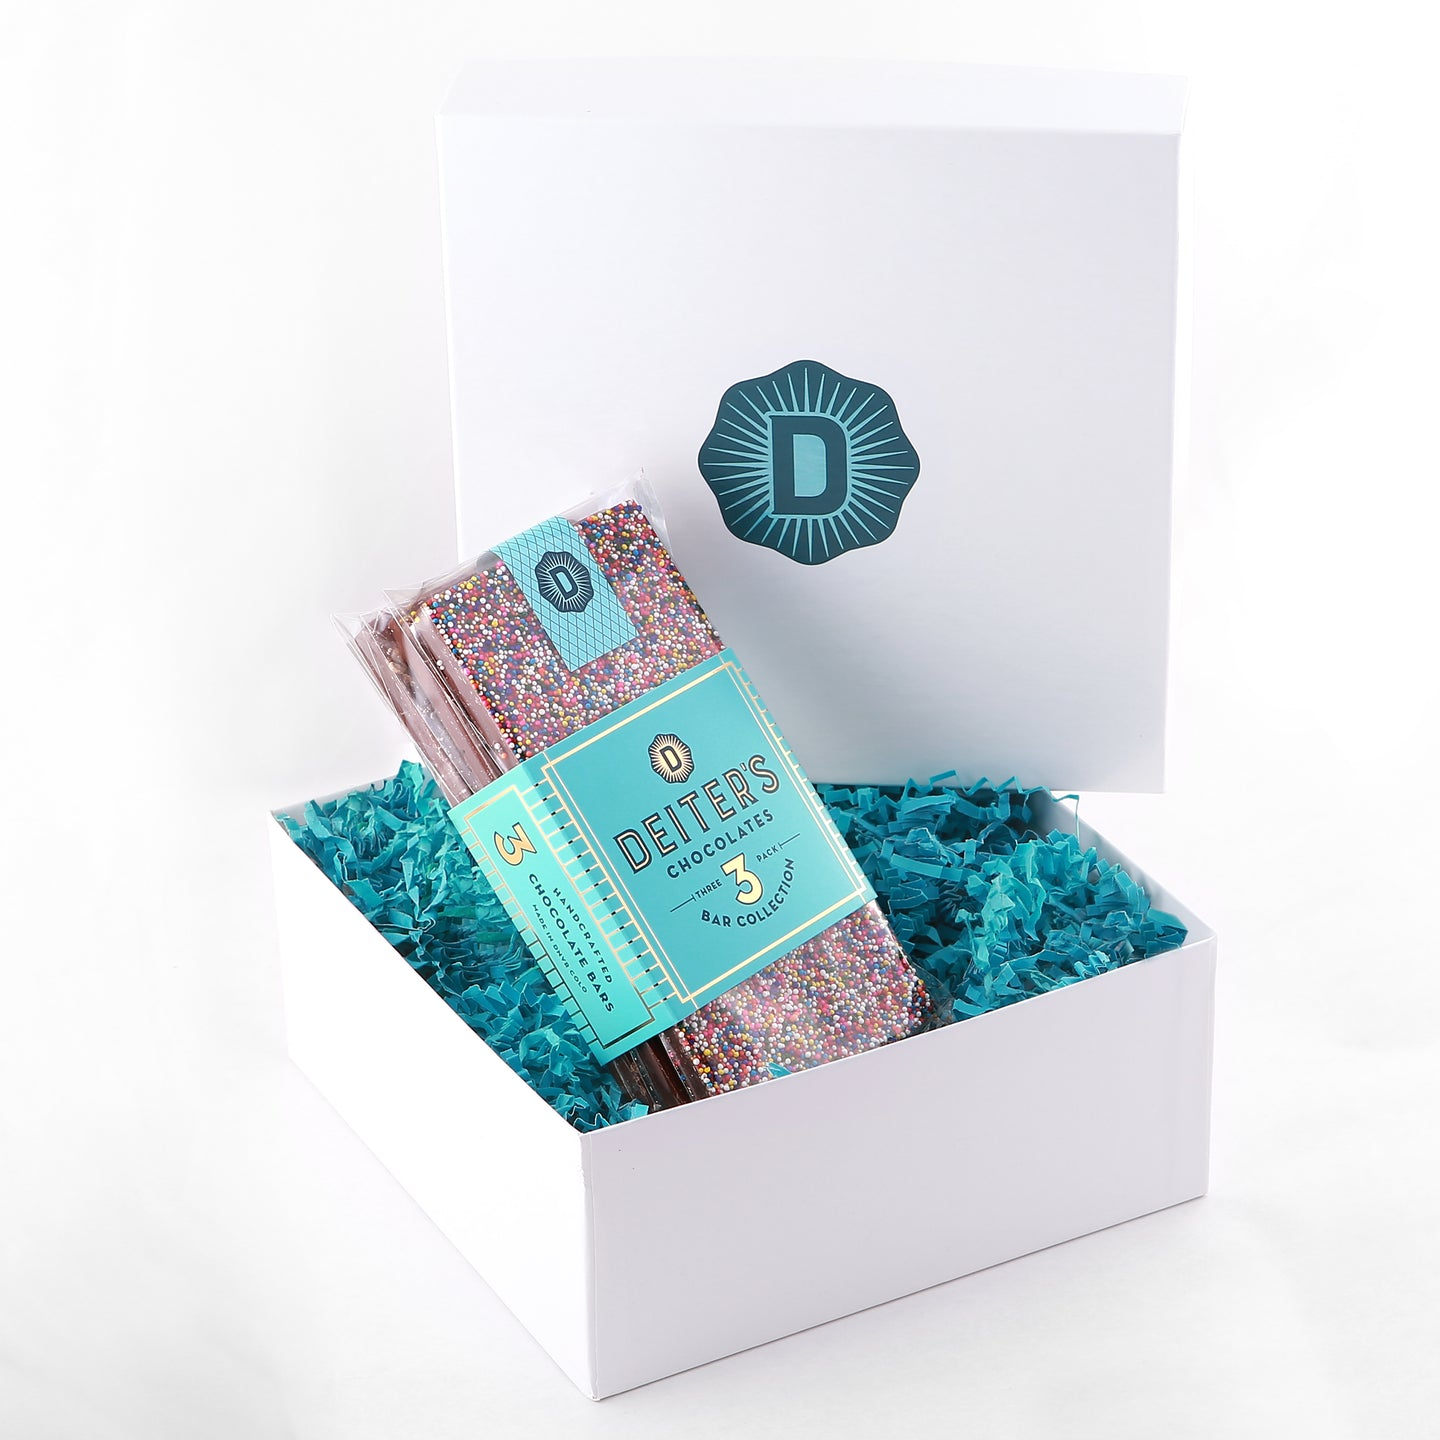 gift box with packaged set of 3 Deiter's bars